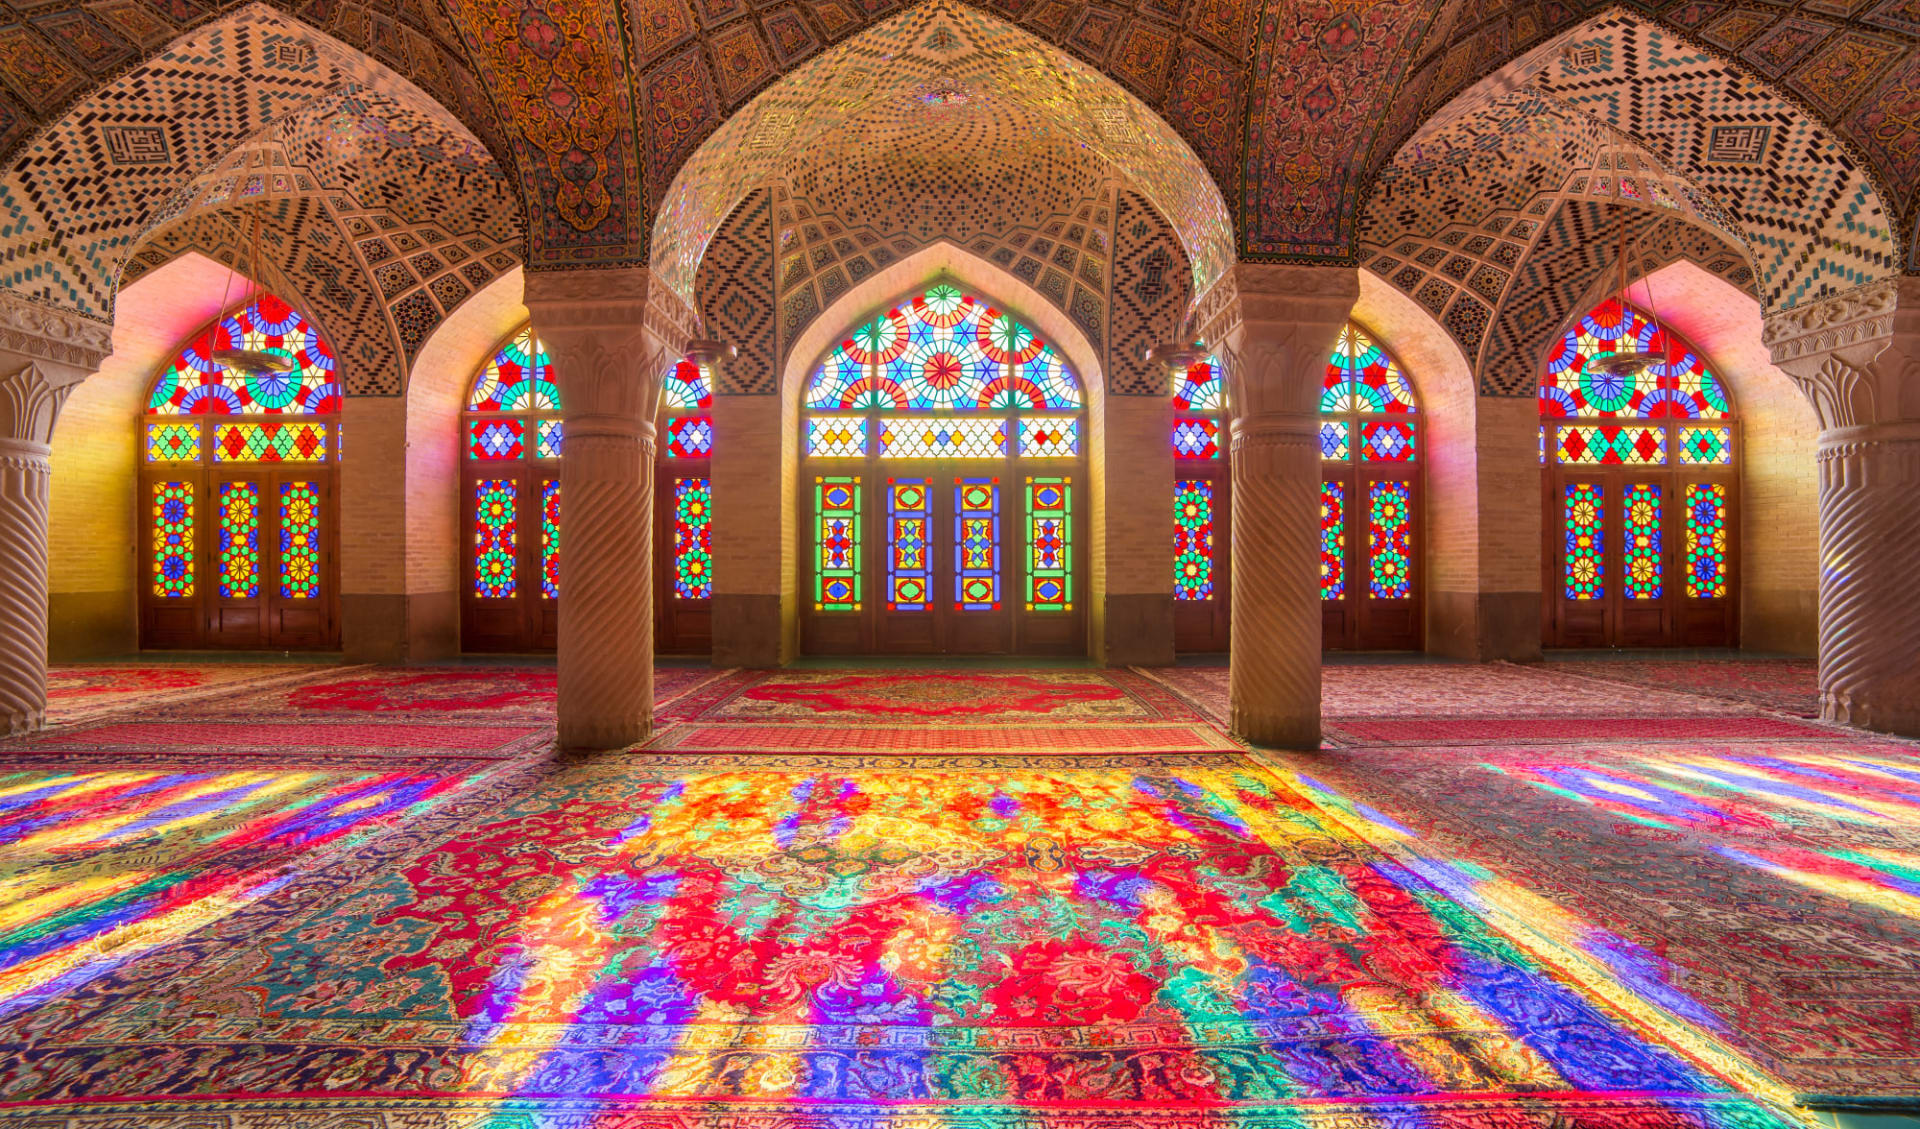 Persischer Golf - 3000 Jahre Handels- und Konfliktgeschichte ab Shiraz: Nasir Al-Mulk Mosque in Shiraz, Iran, also known as Pink Mosque